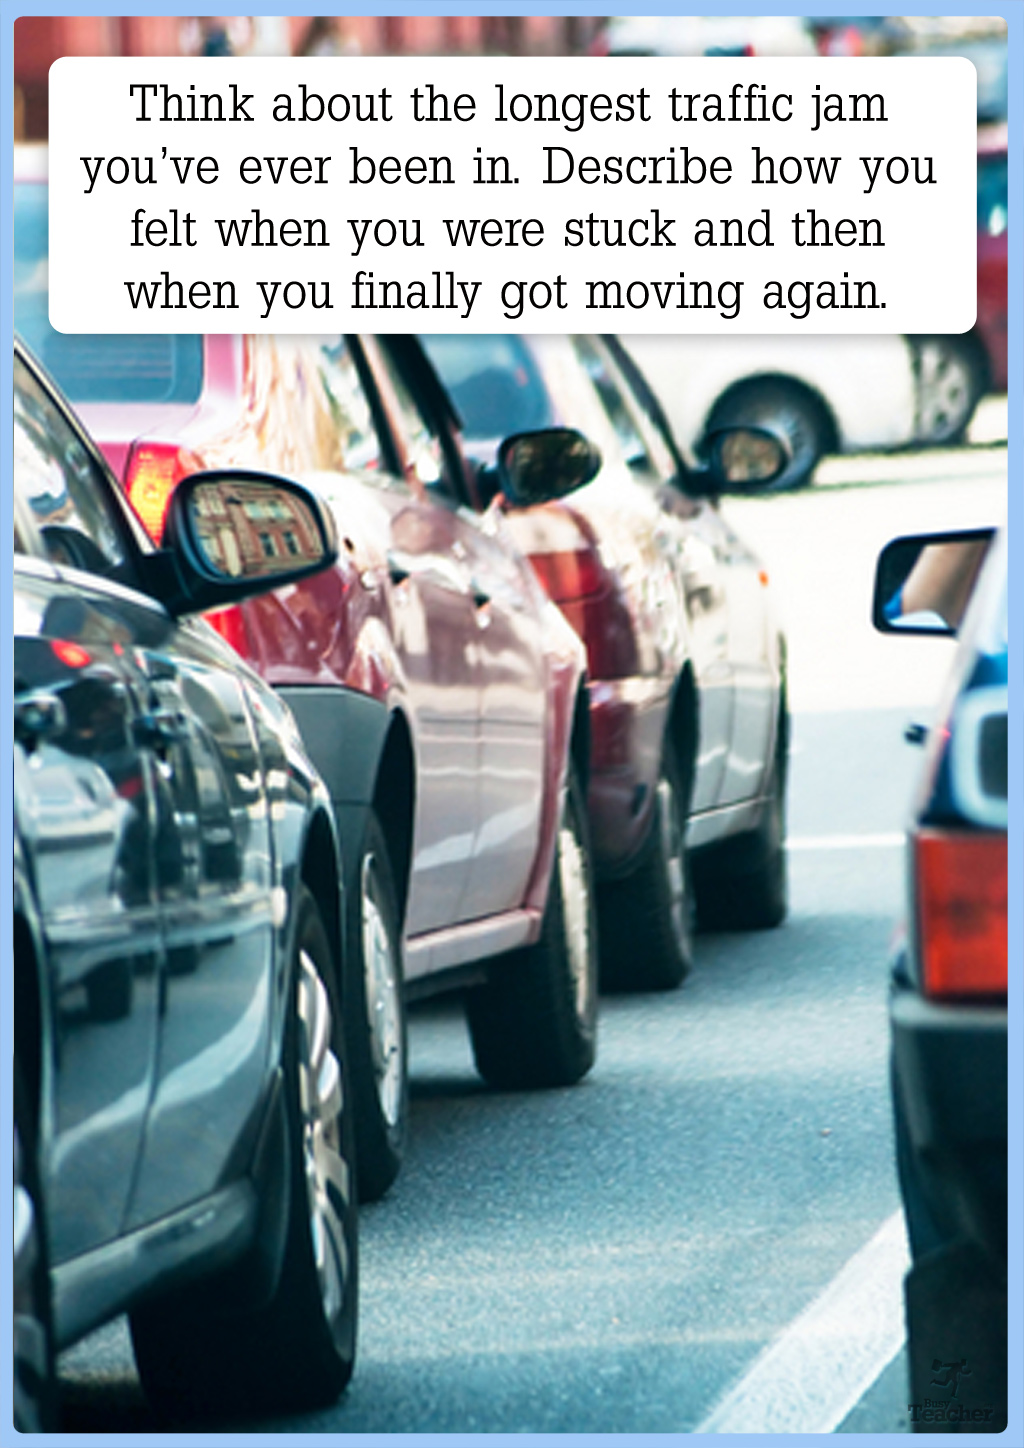 problem solution essay about traffic jam The problem is clear: traffic congestion will become significantly worse and more widespread without big changes in how people and products get around.